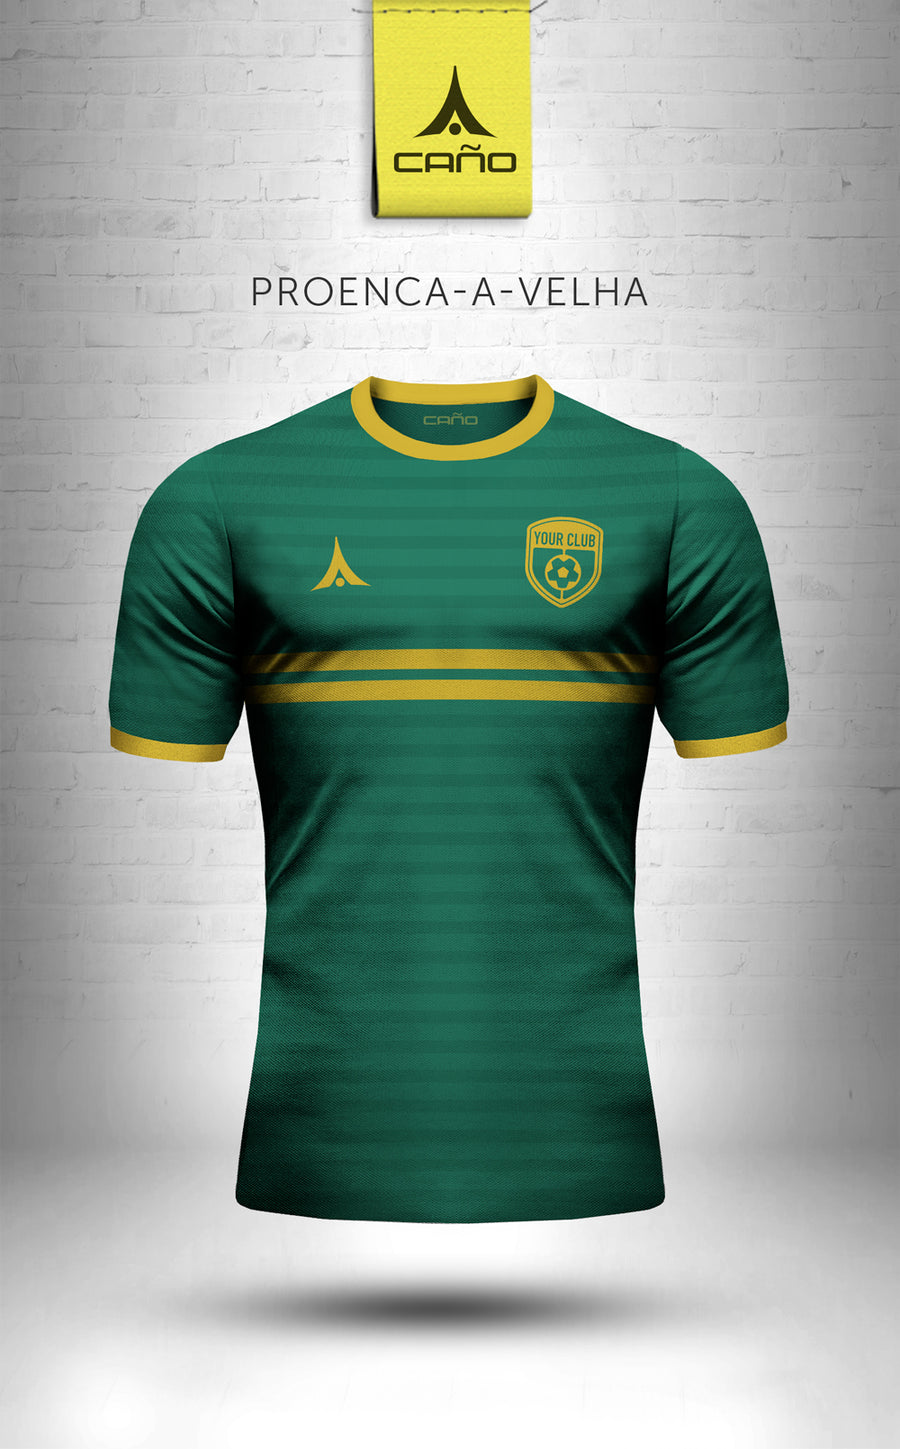 Proenca-a-Velha in green/gold